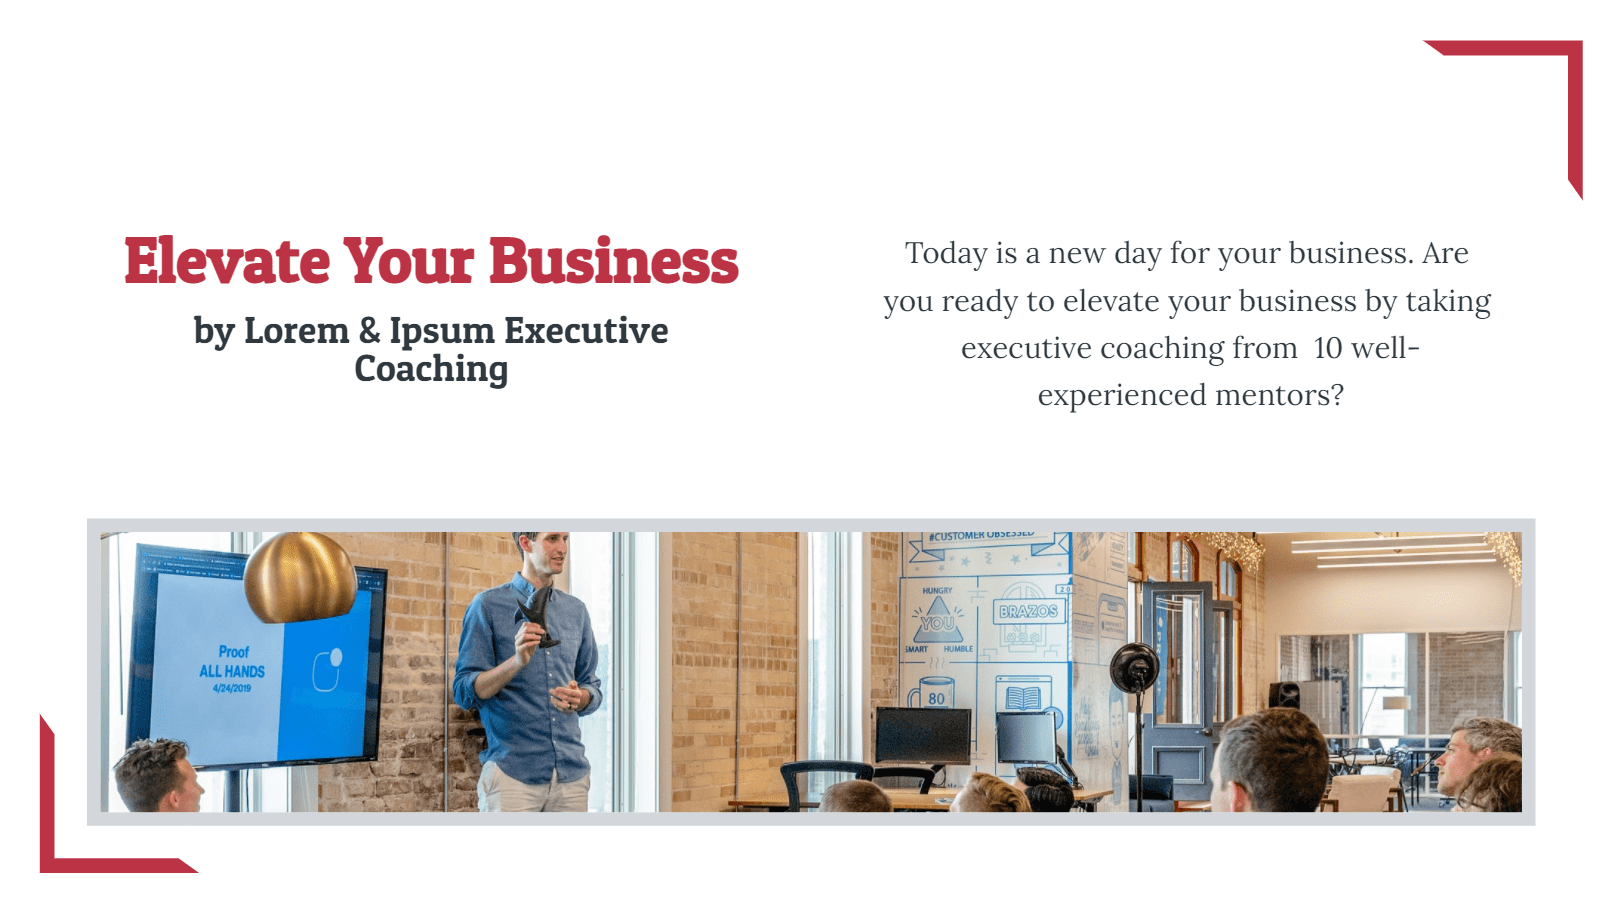 This executive coaching proposal template is all you need for your coaching business. With only one document, you can introduce your services and payment methods, come to an agreement, collect leads, and direct people to a payment page instantly without any effort.